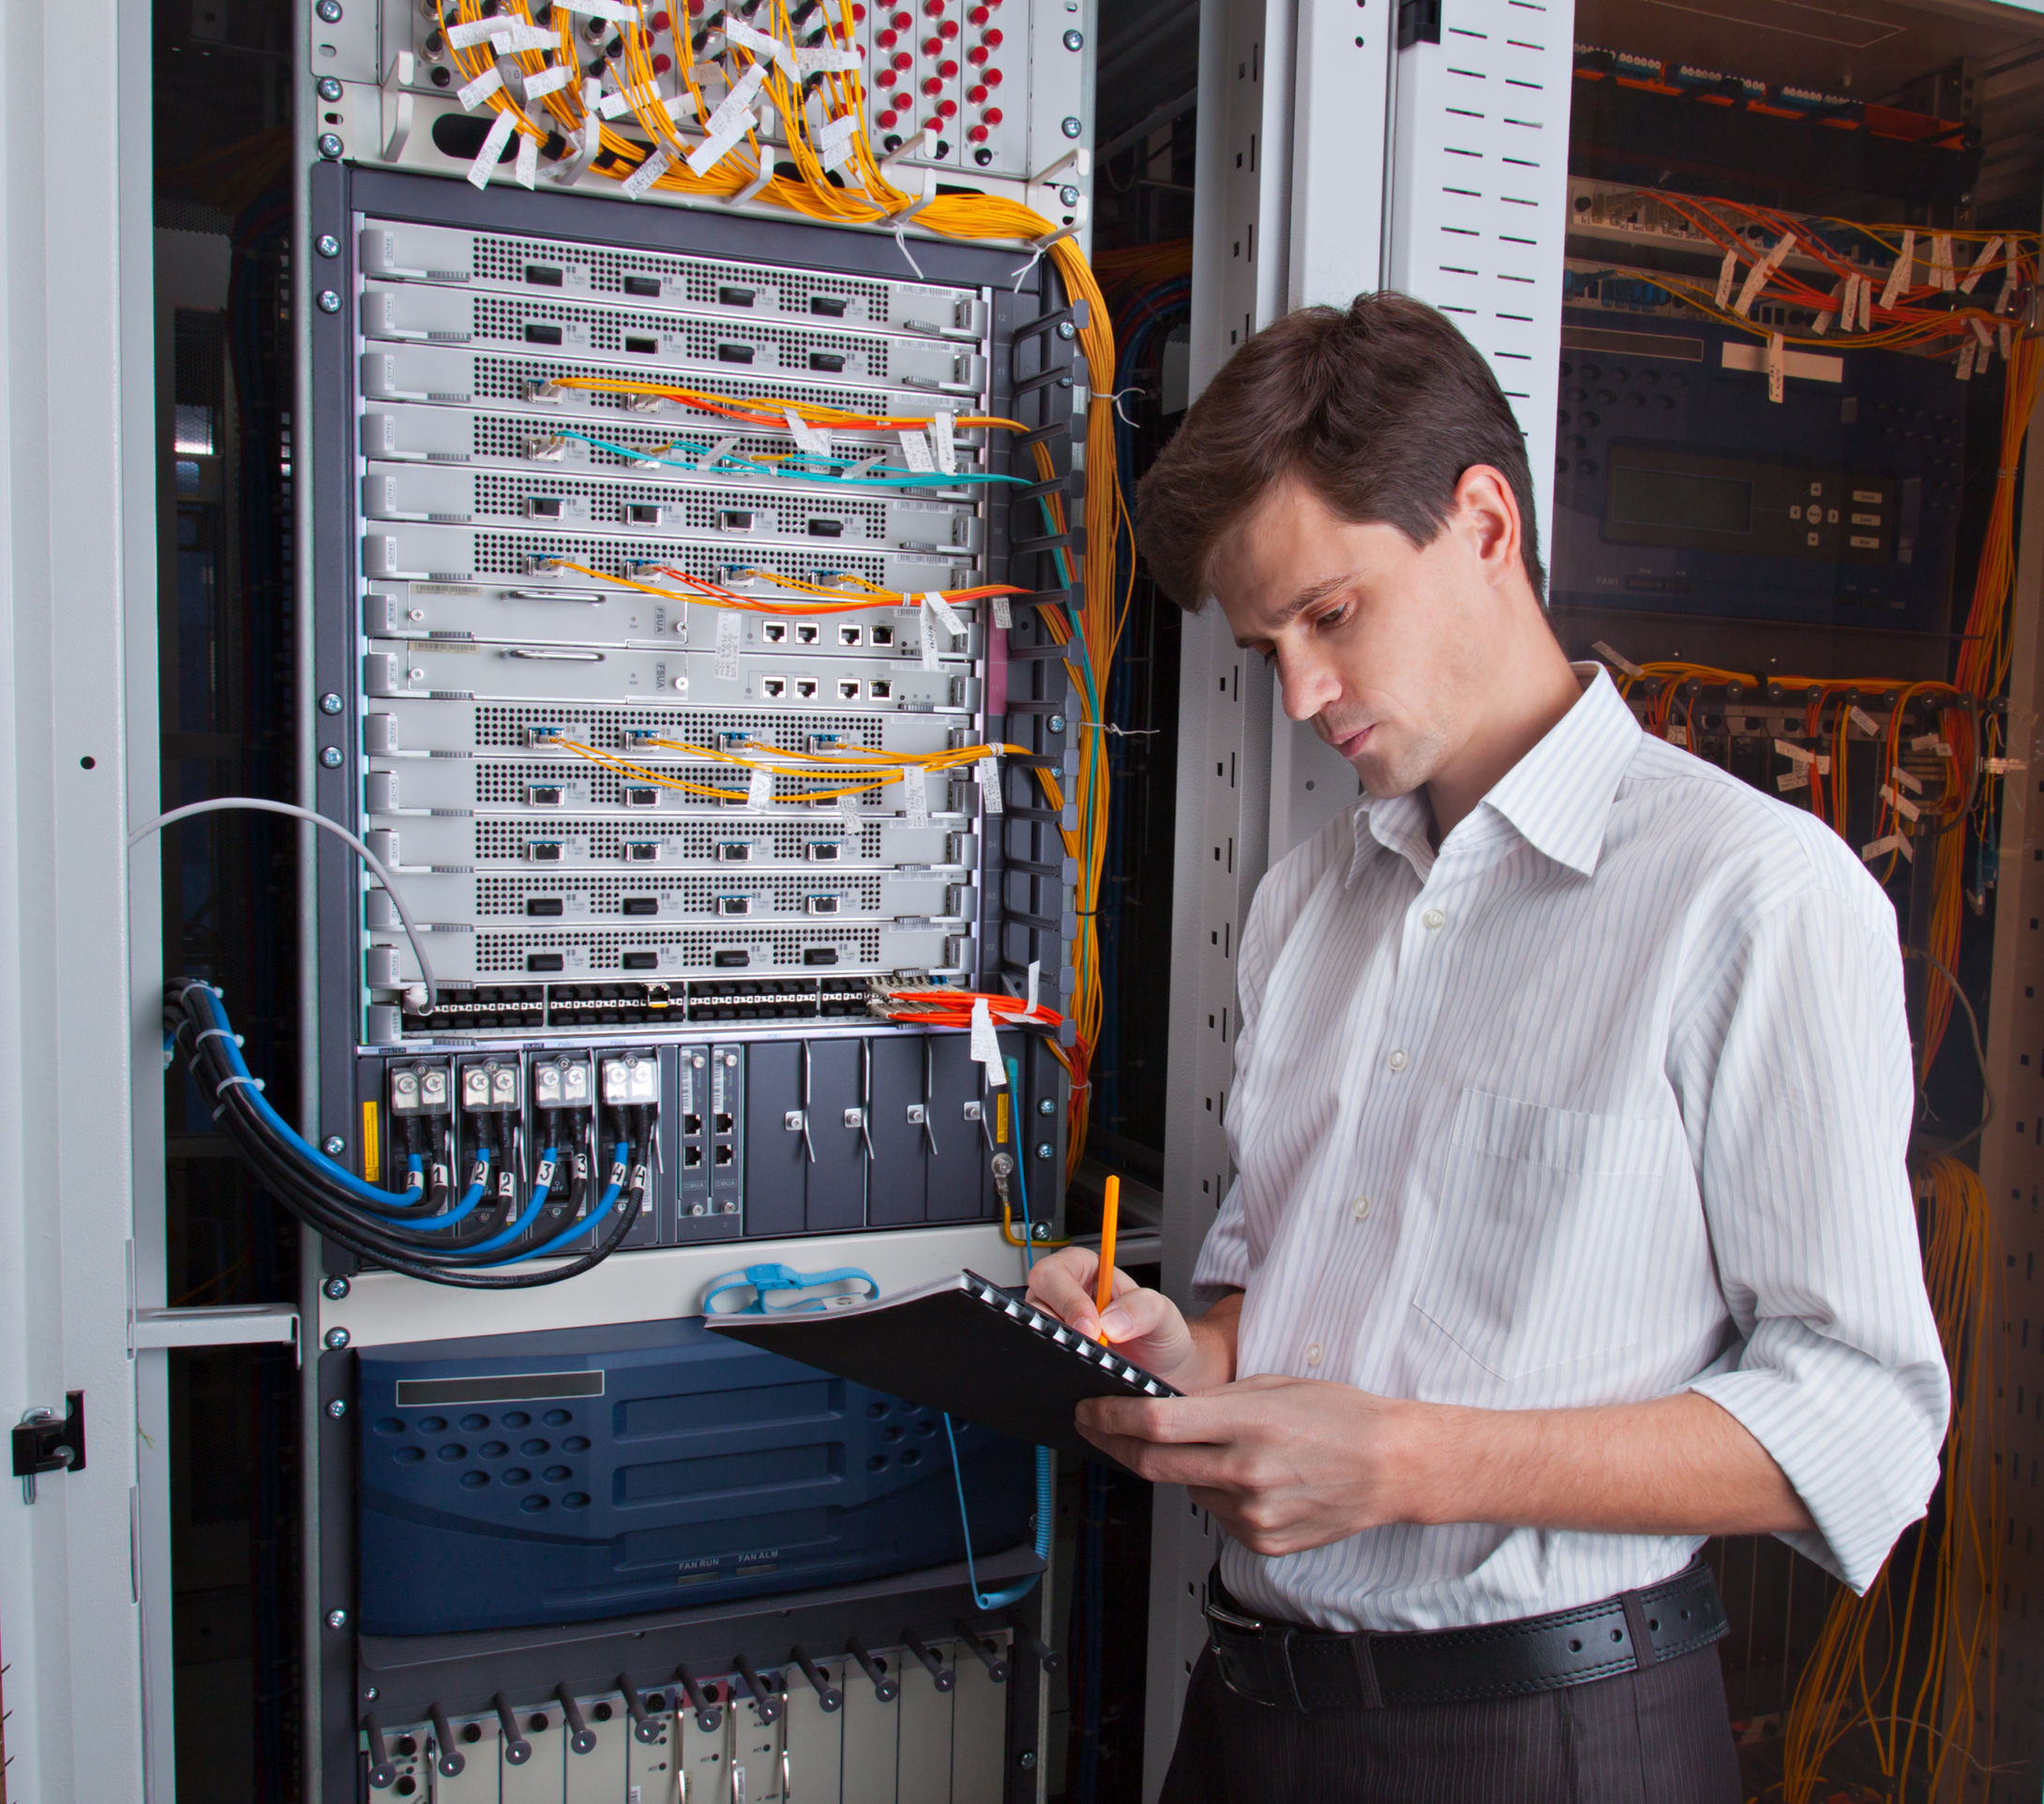 25612889-network-engineer-in-server-room-with-pen-and-tablet_25612889_m